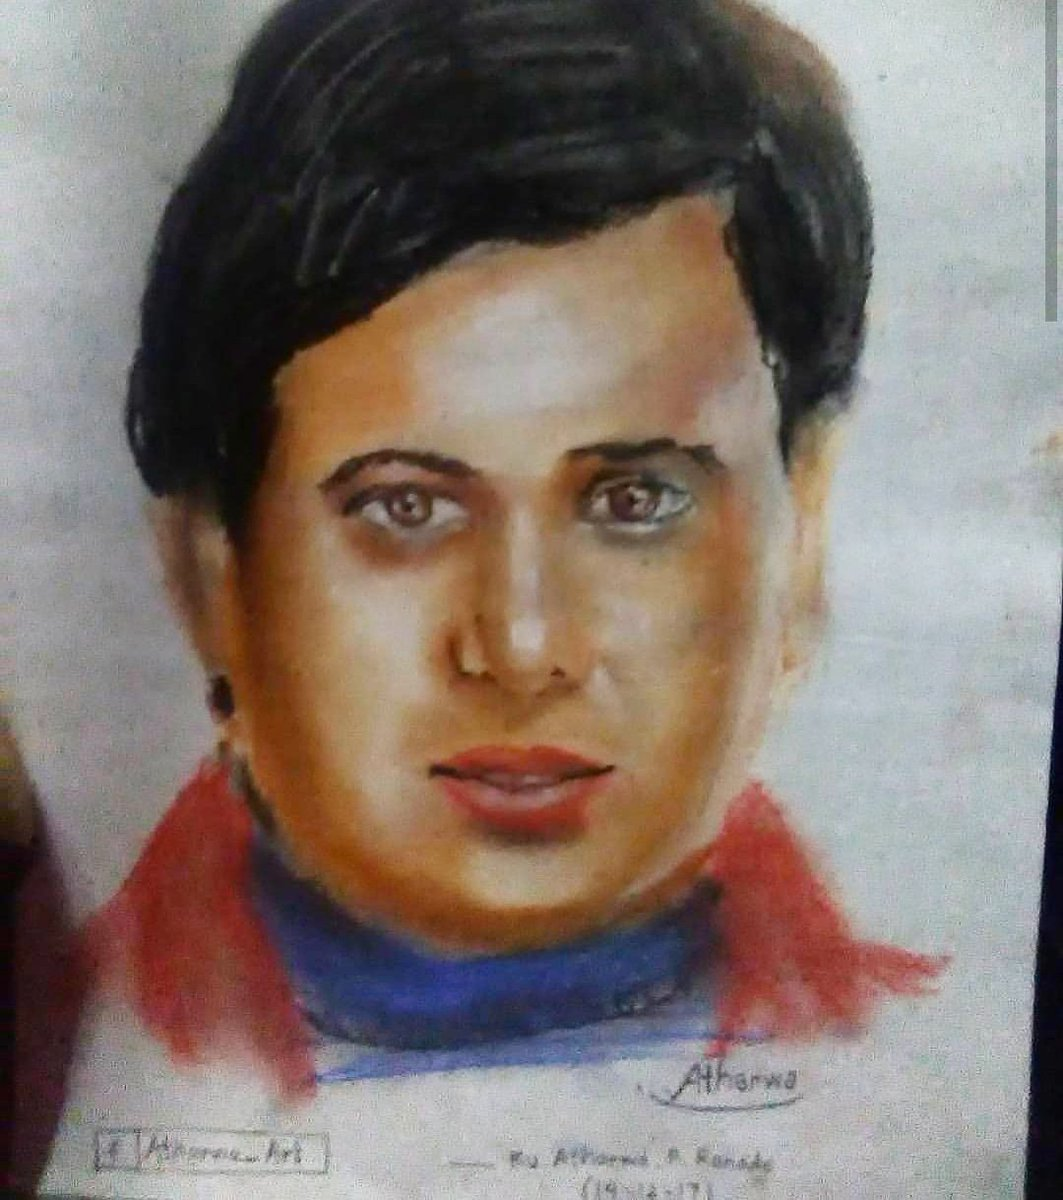 Happy birthday!!!  @govinda_herono1 An excellent dancer and actor with great comic timing...😍  Throwback to the portrait drawn last year....40 min rapid sketch with pastels #sketch #arts #artsupporting #artpromotion  #sketch #drawing #insta #Govinda #HappyBirthdayGovinda